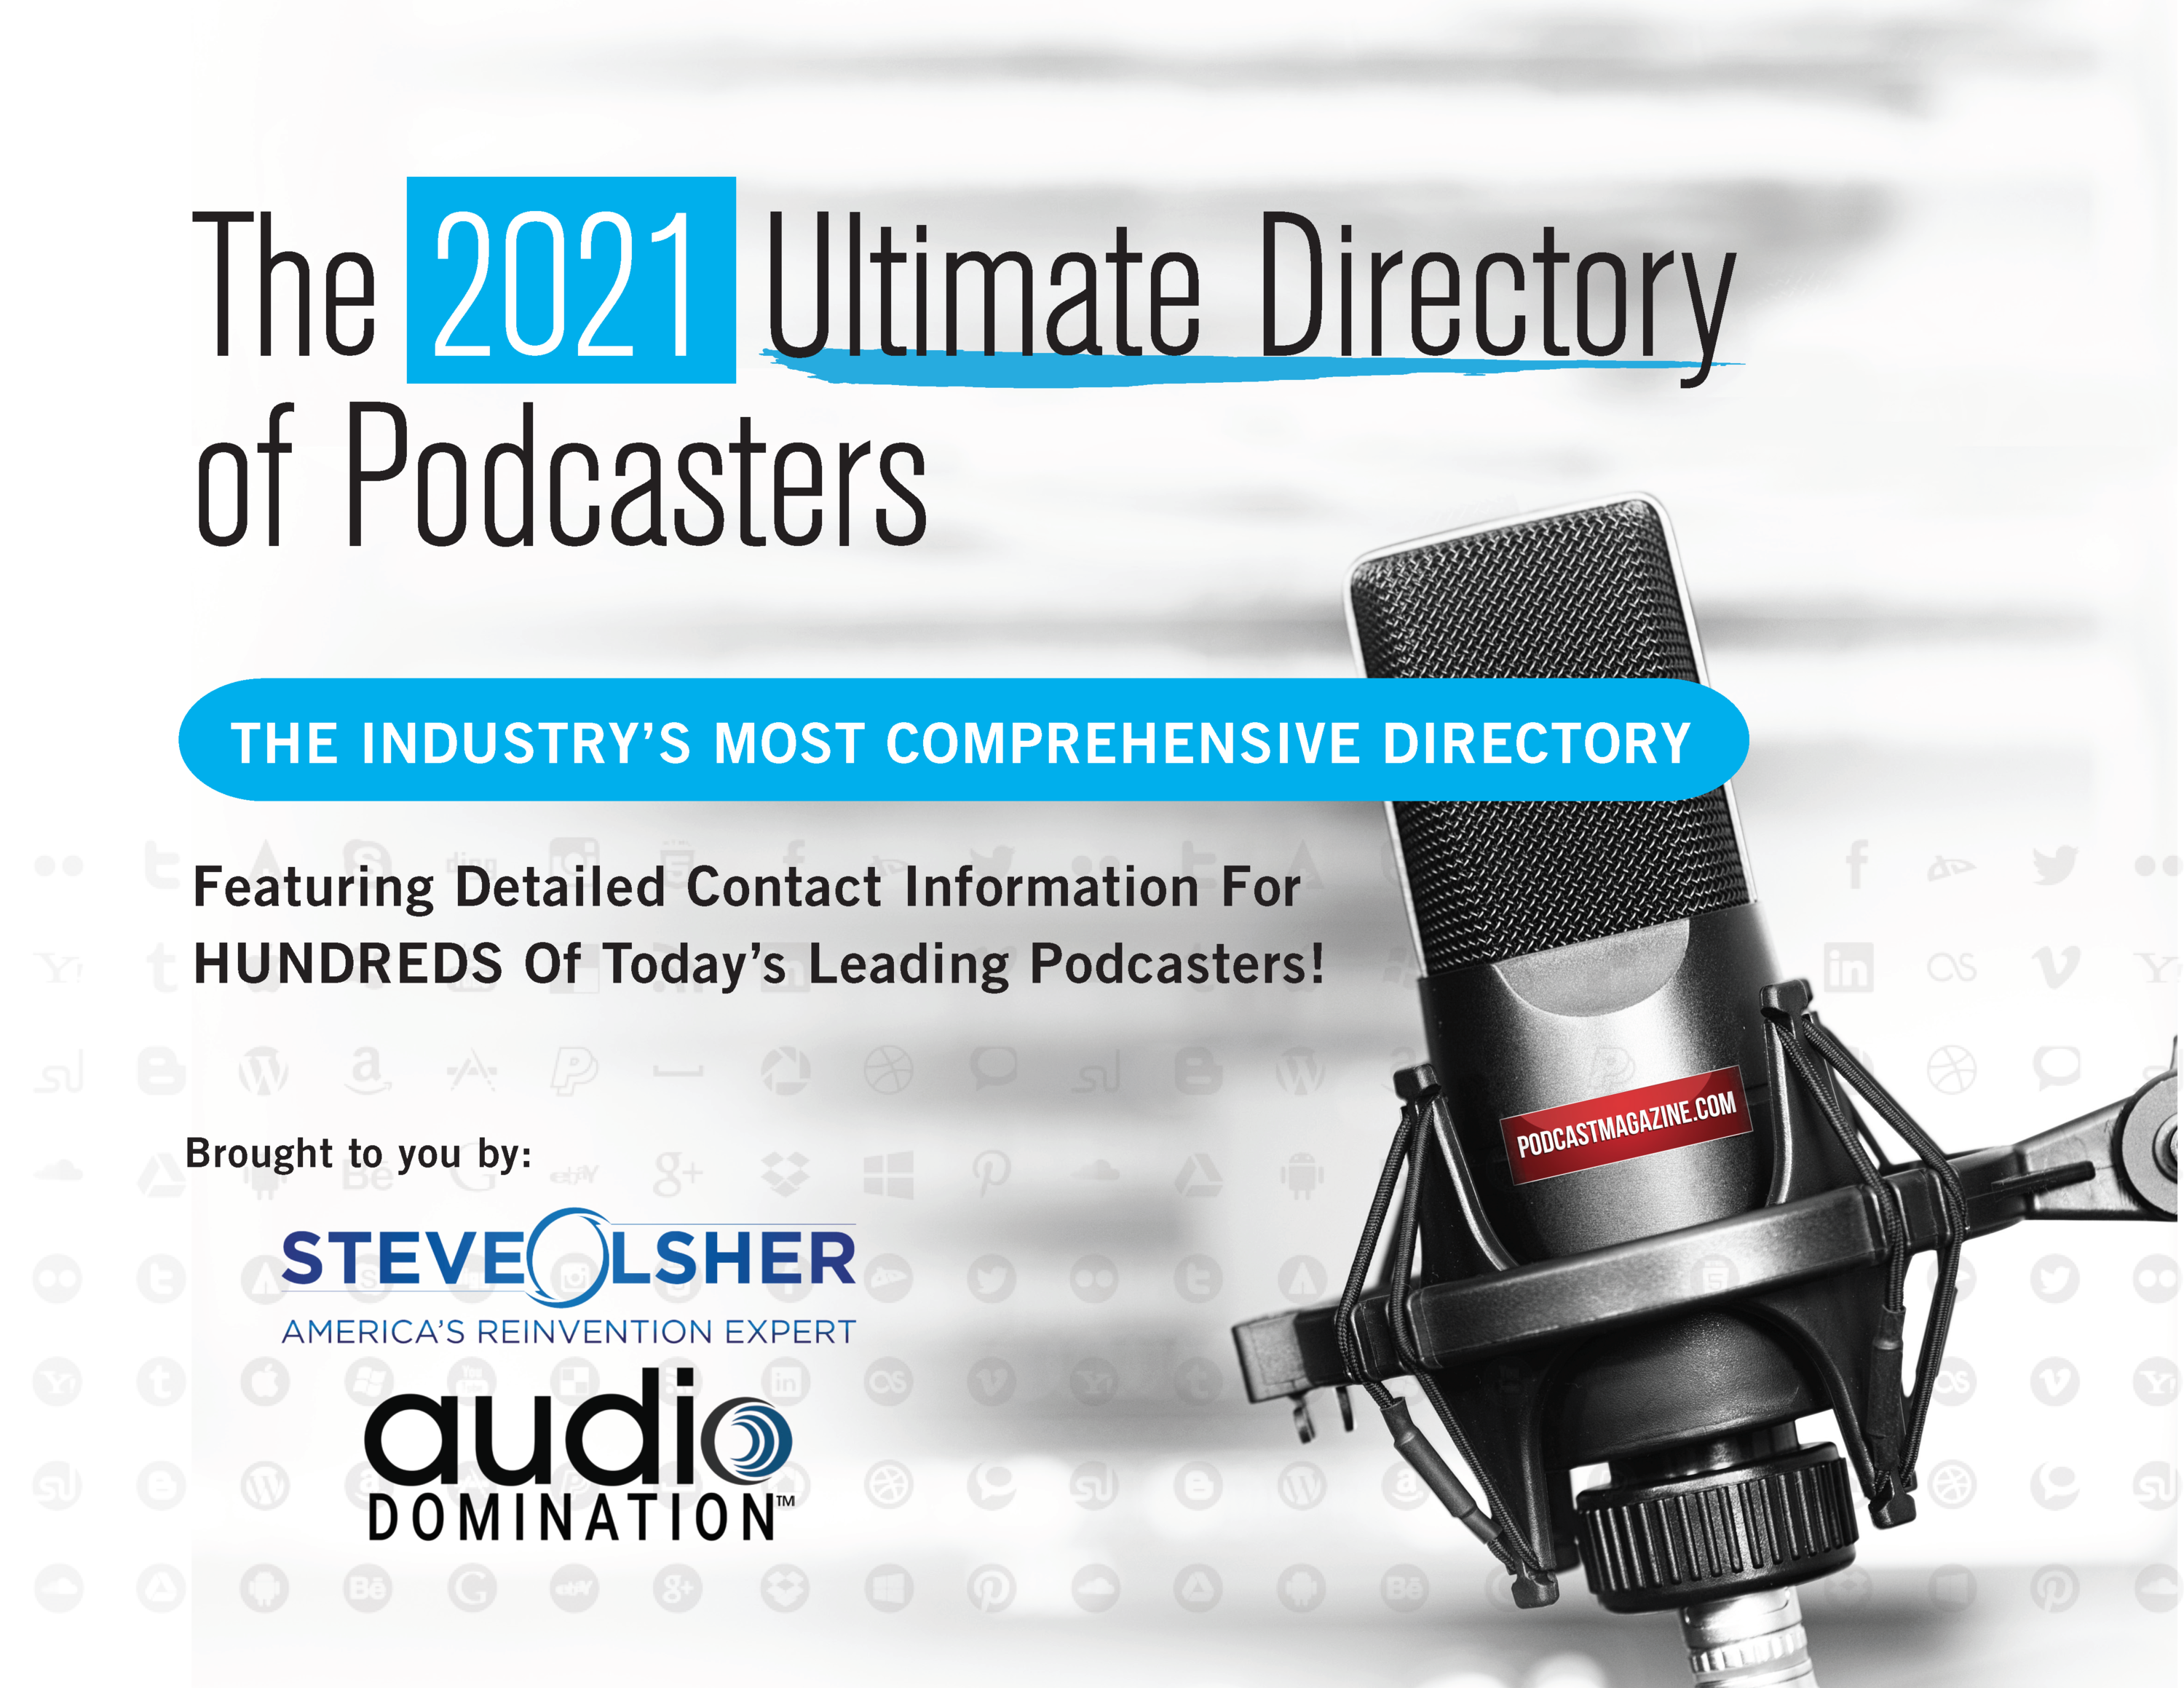 The Ultimate Directory of Podcasters